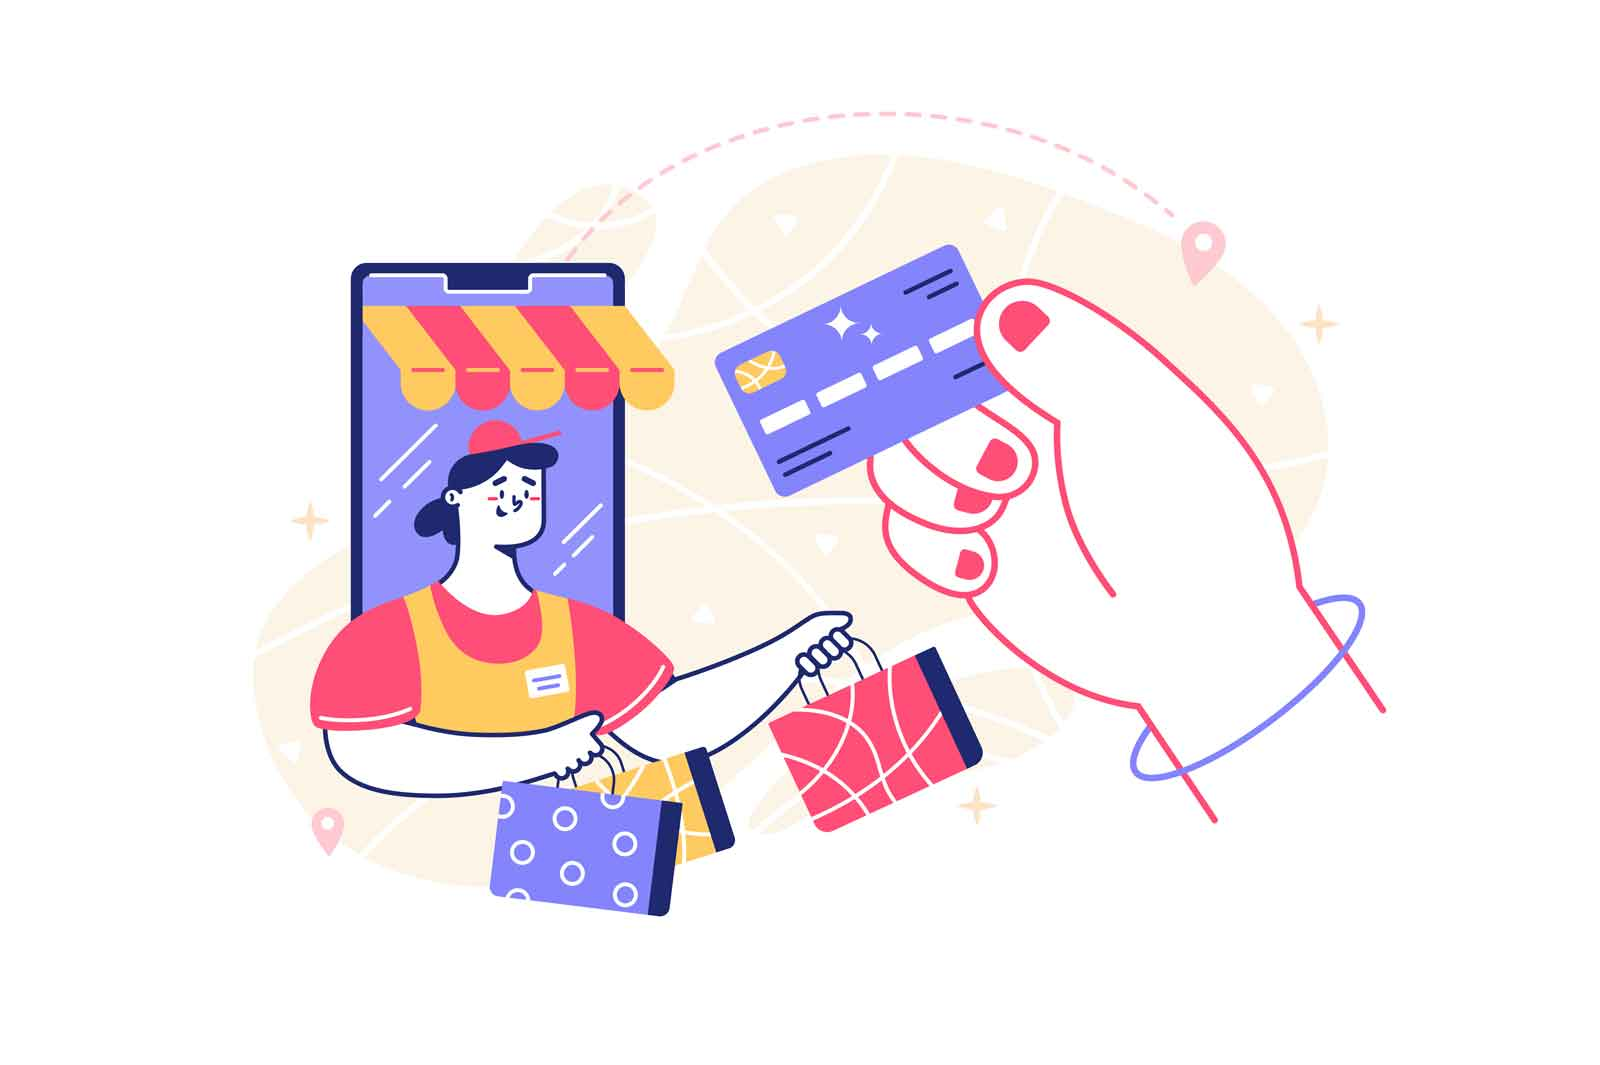 Shopping using mobile phone vector illustration. Person pay with credit card flat style. Online shopping via smartphone. Technology and innovation concept. Isolated on white background